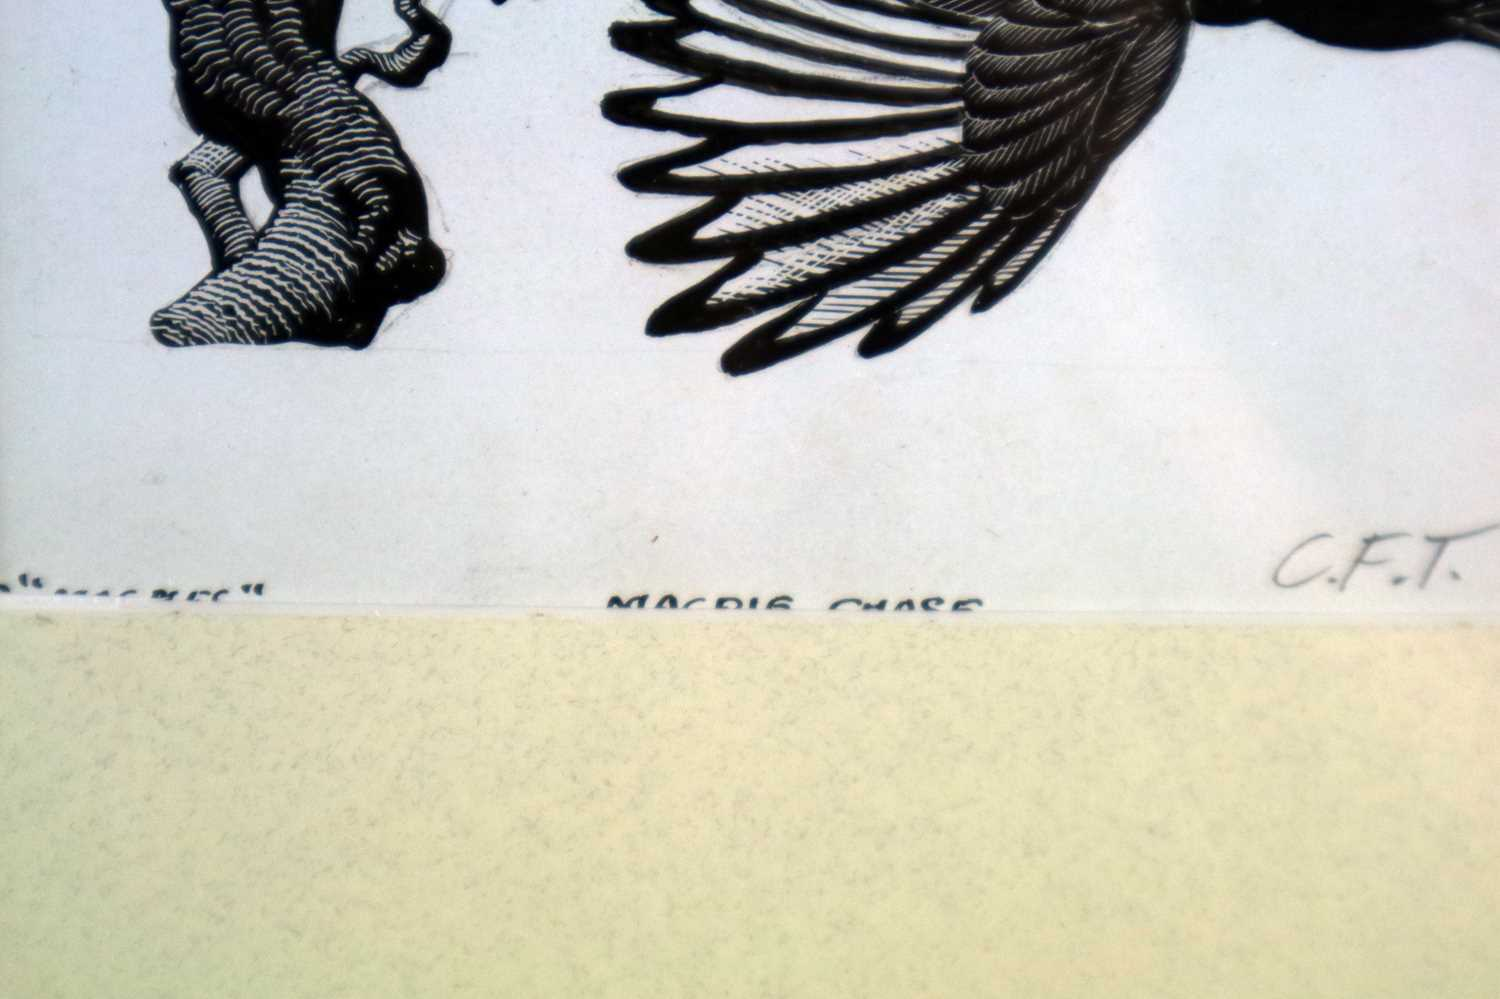 Charles Frederick Tunnicliffe OBE RA (1901-1979) Magpie Chase - Image 3 of 5